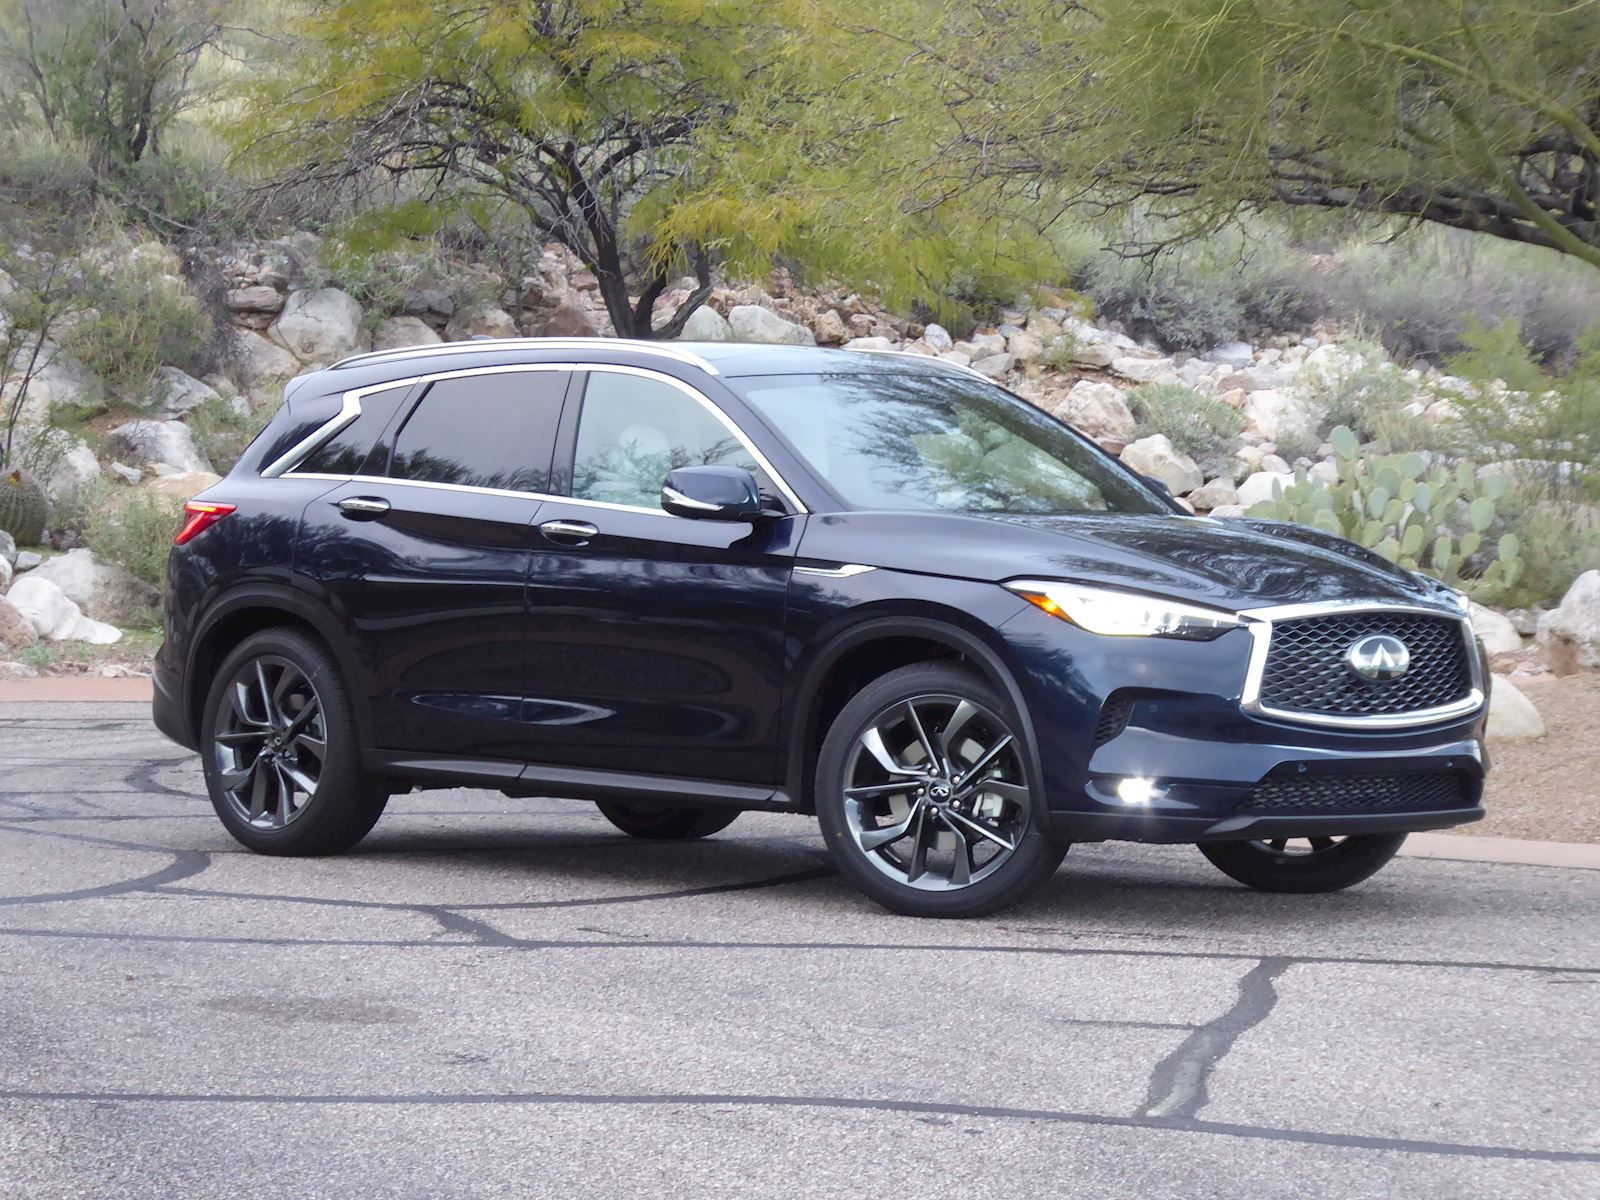 2020 Infiniti QX50 exterior side view